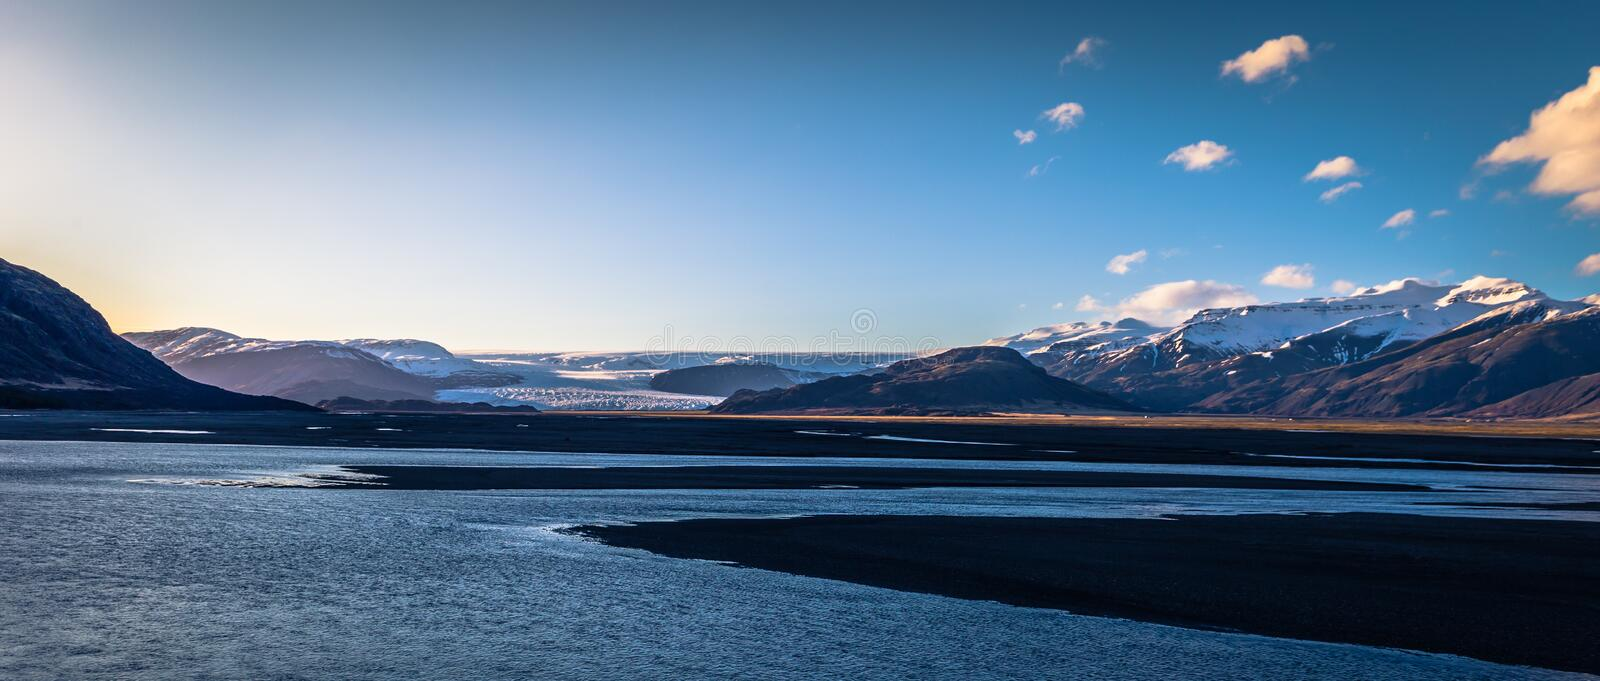 Icelandic wilderness - May 05, 2018: Mountains in the wilderness of Iceland stock photography